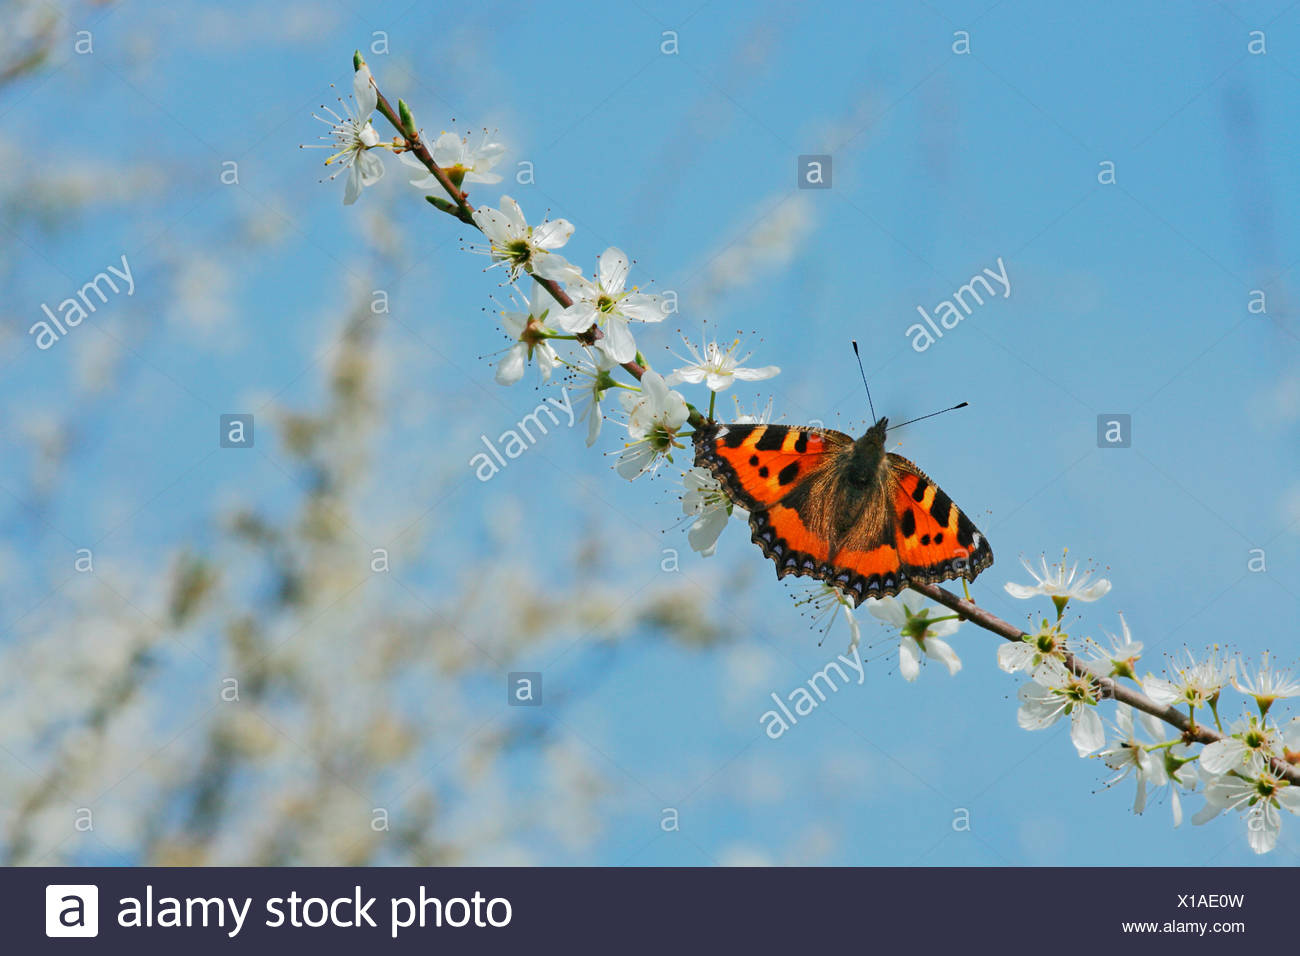 Small Tortoiseshell butterfly (Nymphalis urticae) on blooming blackthorn twig (Prunus spinosa) - Stock Image